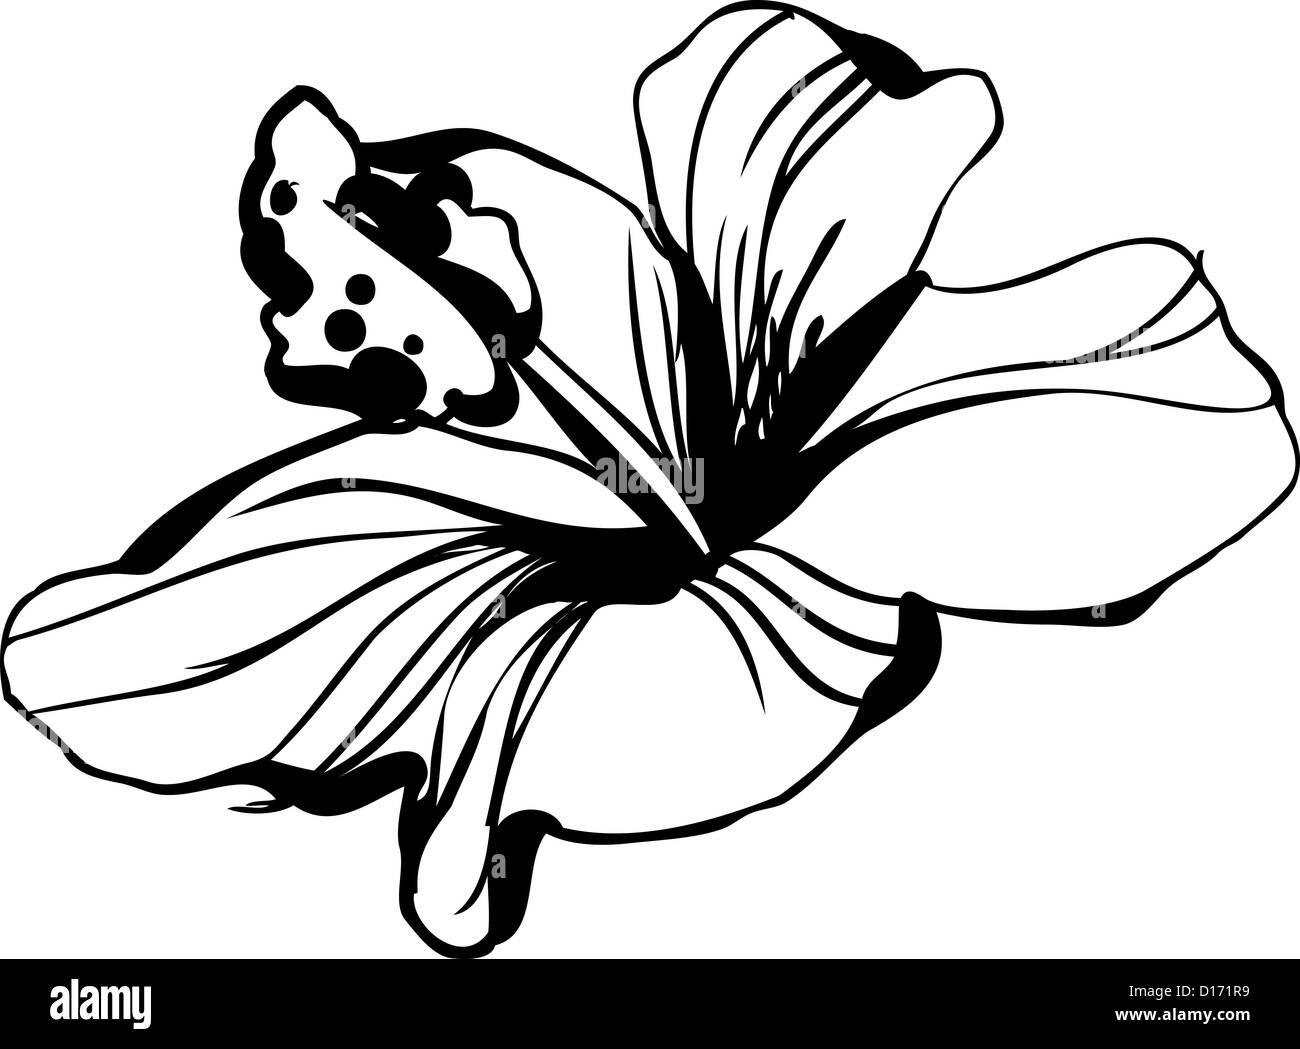 A hibiscus plant black and white stock photos images alamy a sketch blossoming hibiscus a flower bud stock image izmirmasajfo